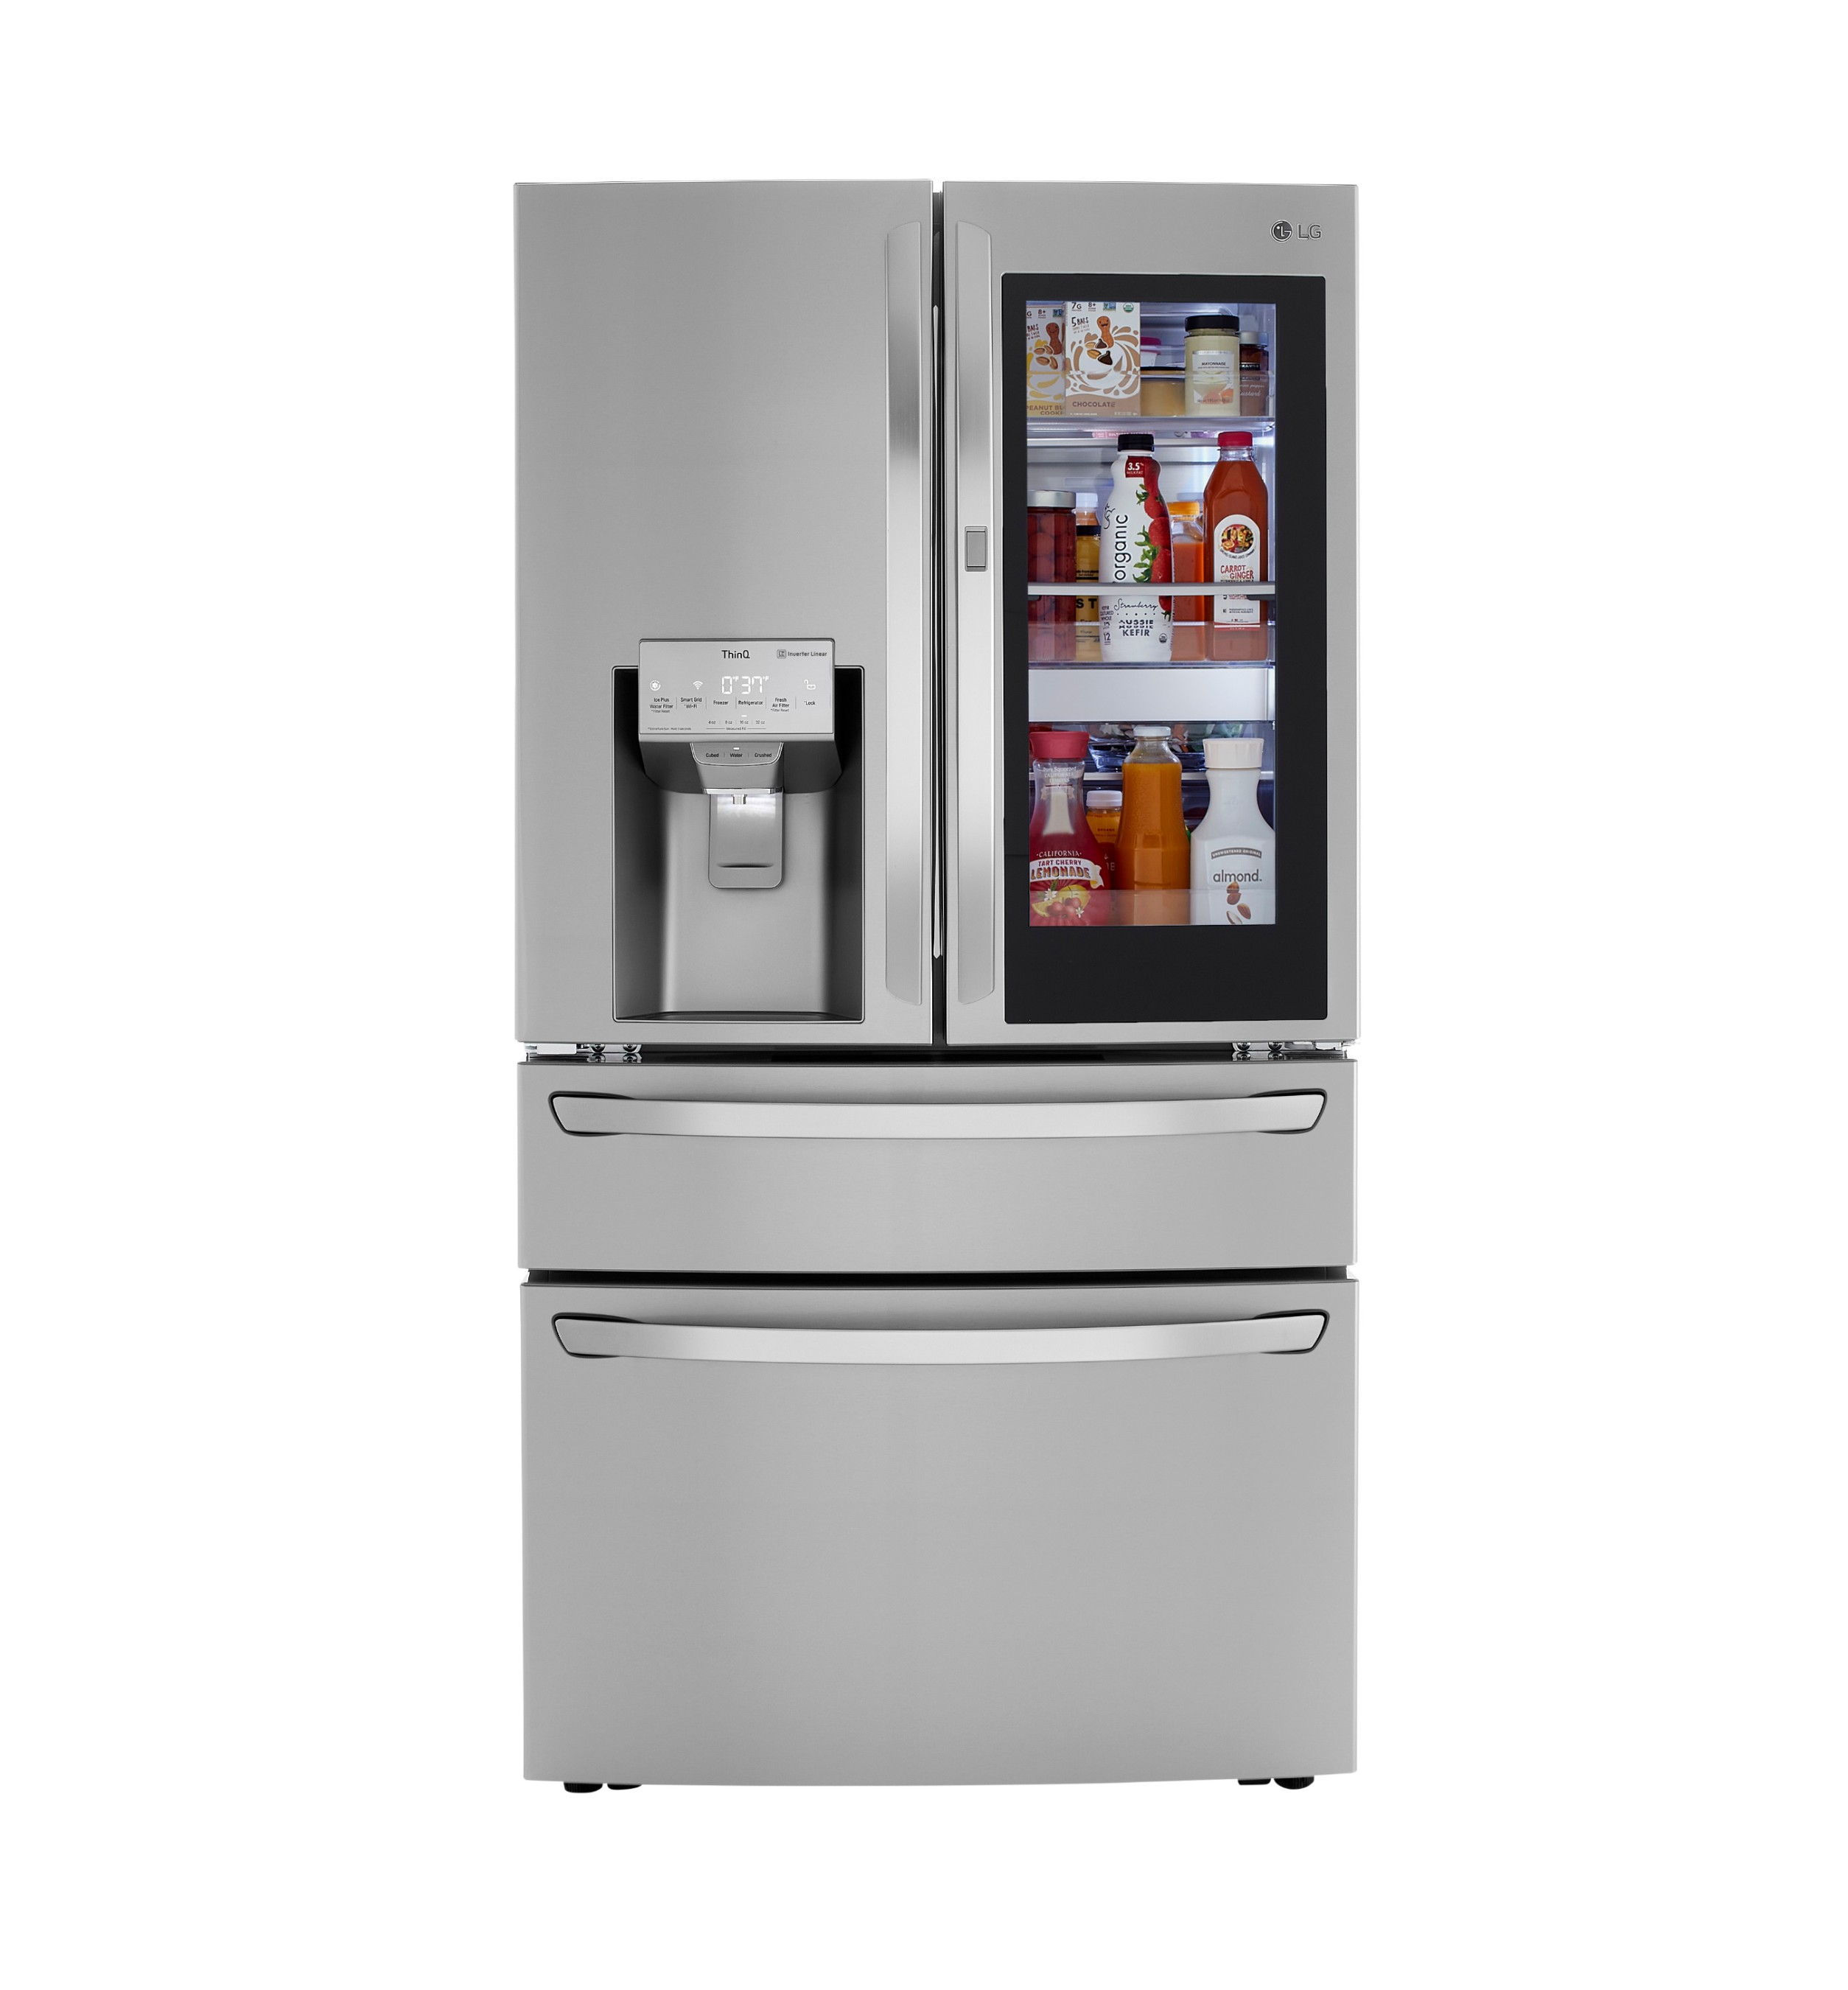 LG's popular InstaView refrigerators enable users to knock twice to illuminate the interior and see inside so they can choose without opening the door. Offering quick and easy access to favorite foods, snacks for the kids, cocktail mixers and more, the popular Door-in-Door® design keeps it all organized.